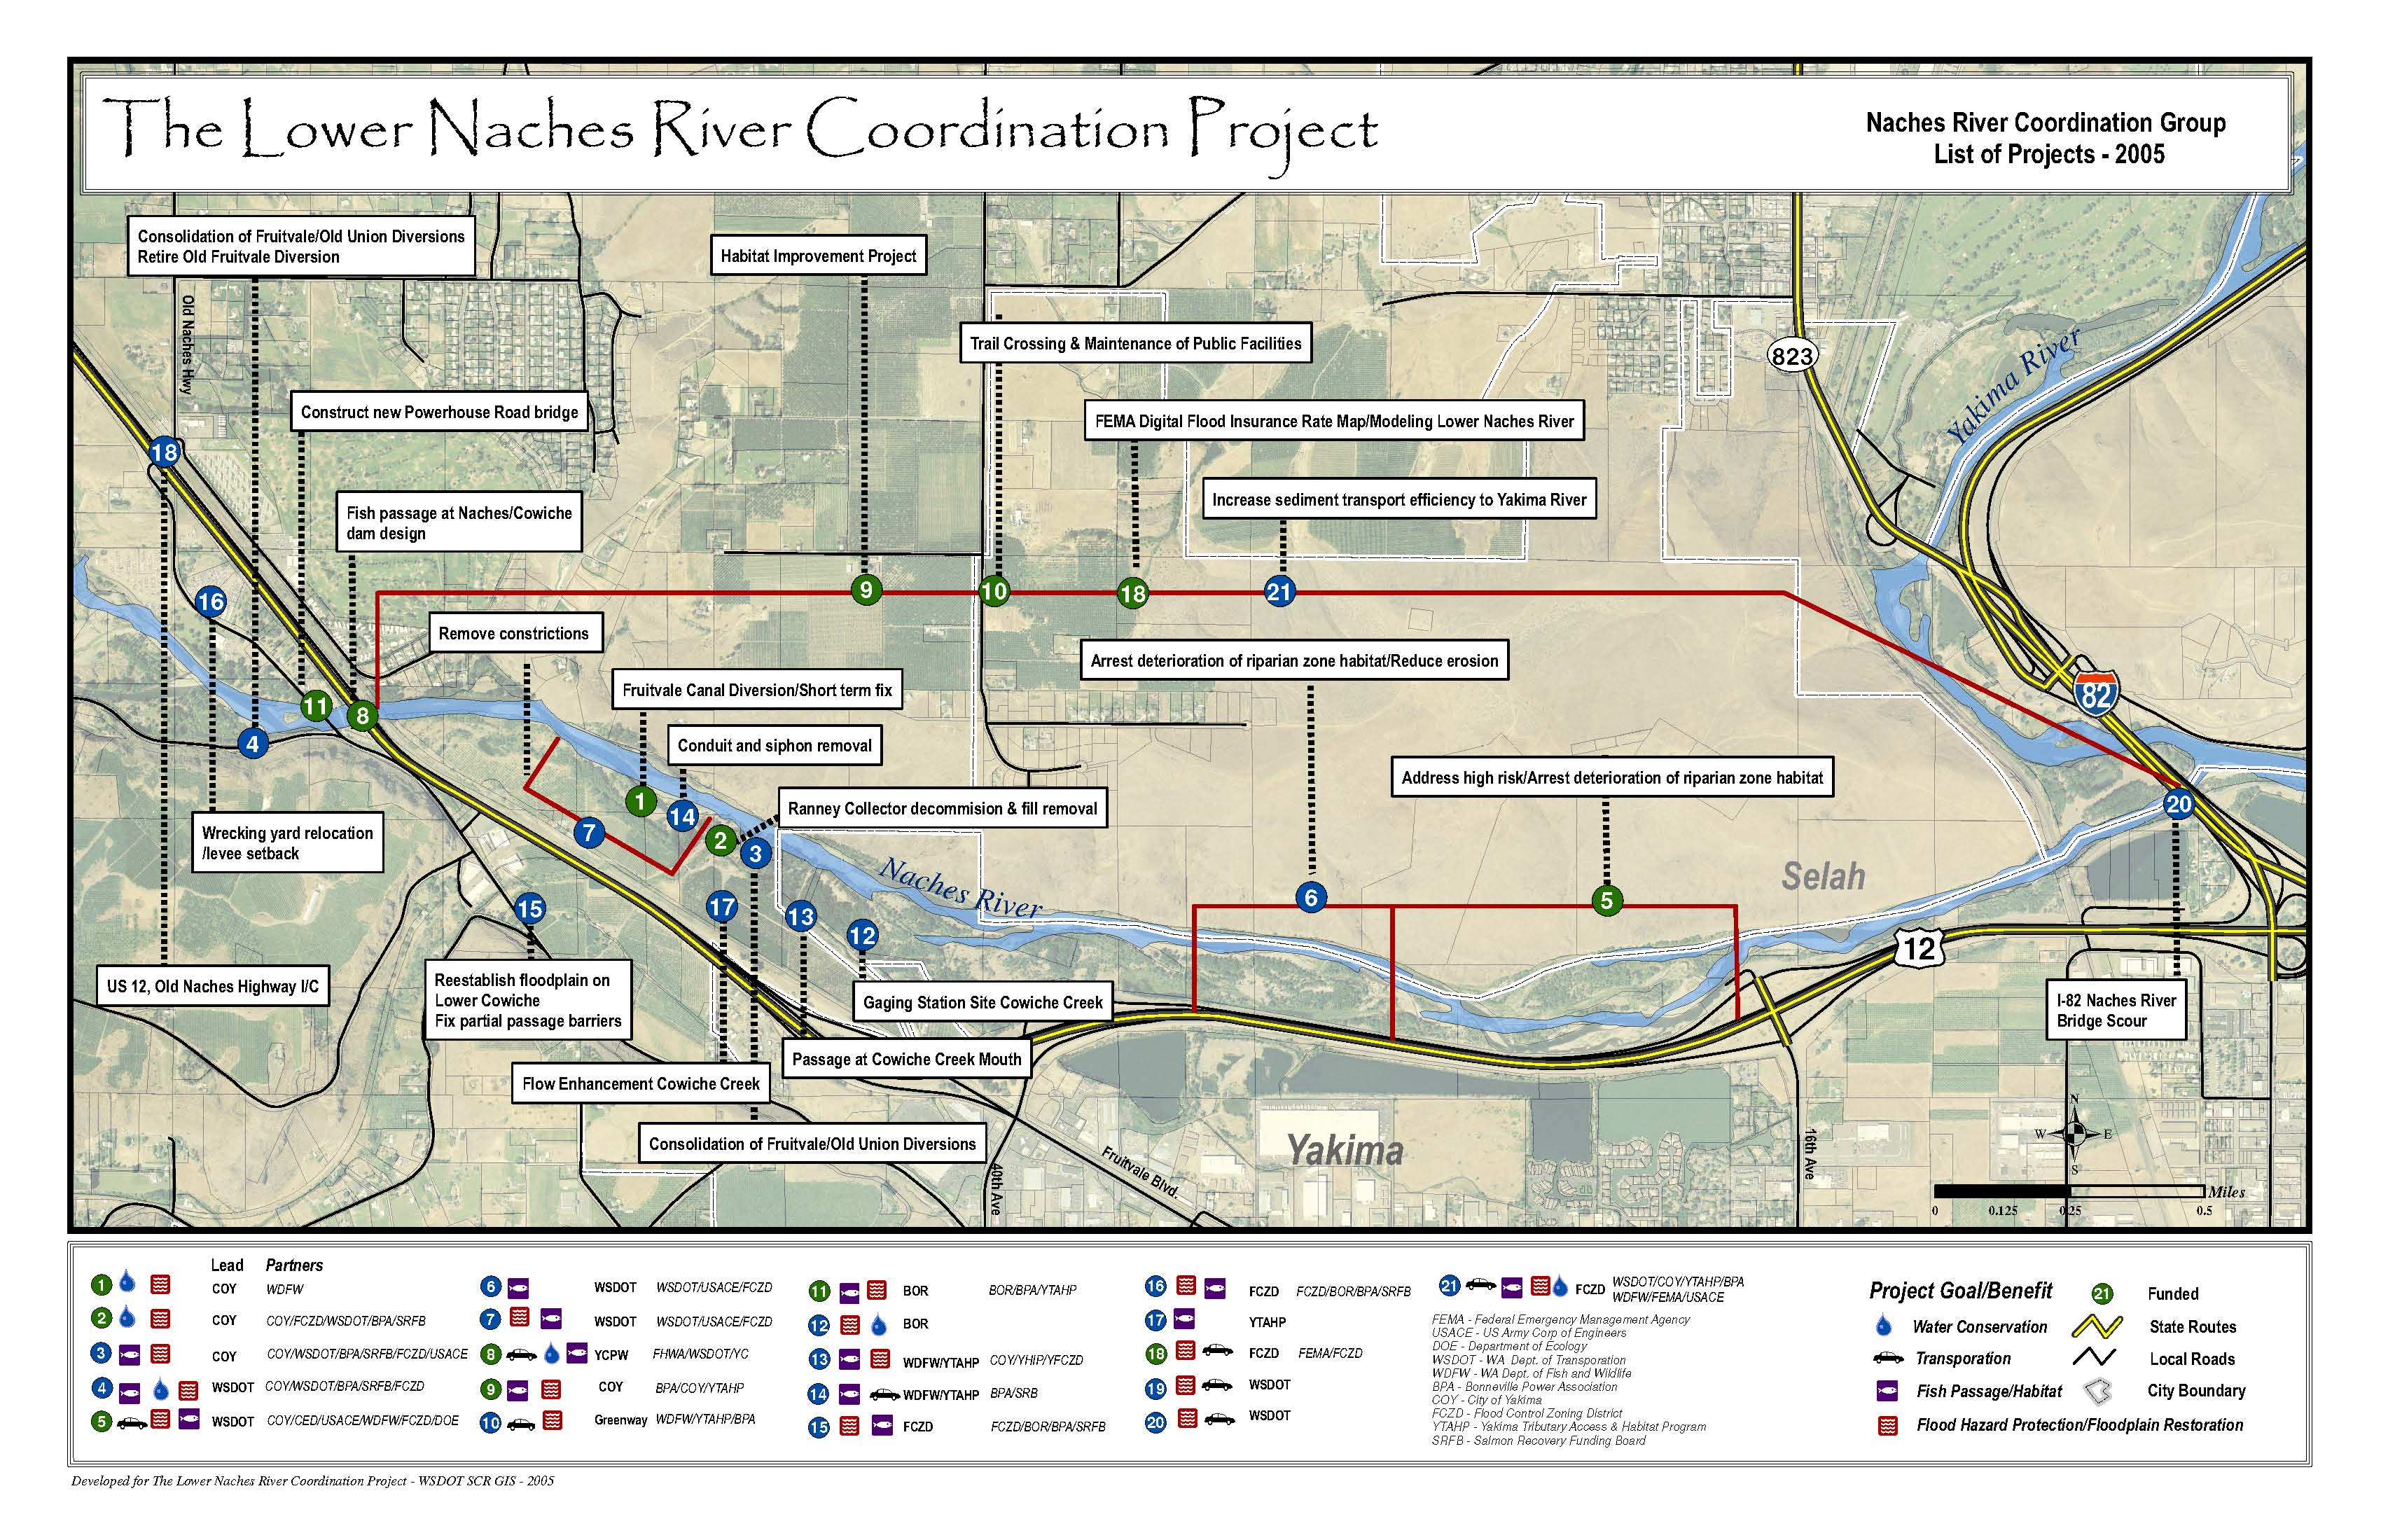 Lower Naches River Coordination Project Map